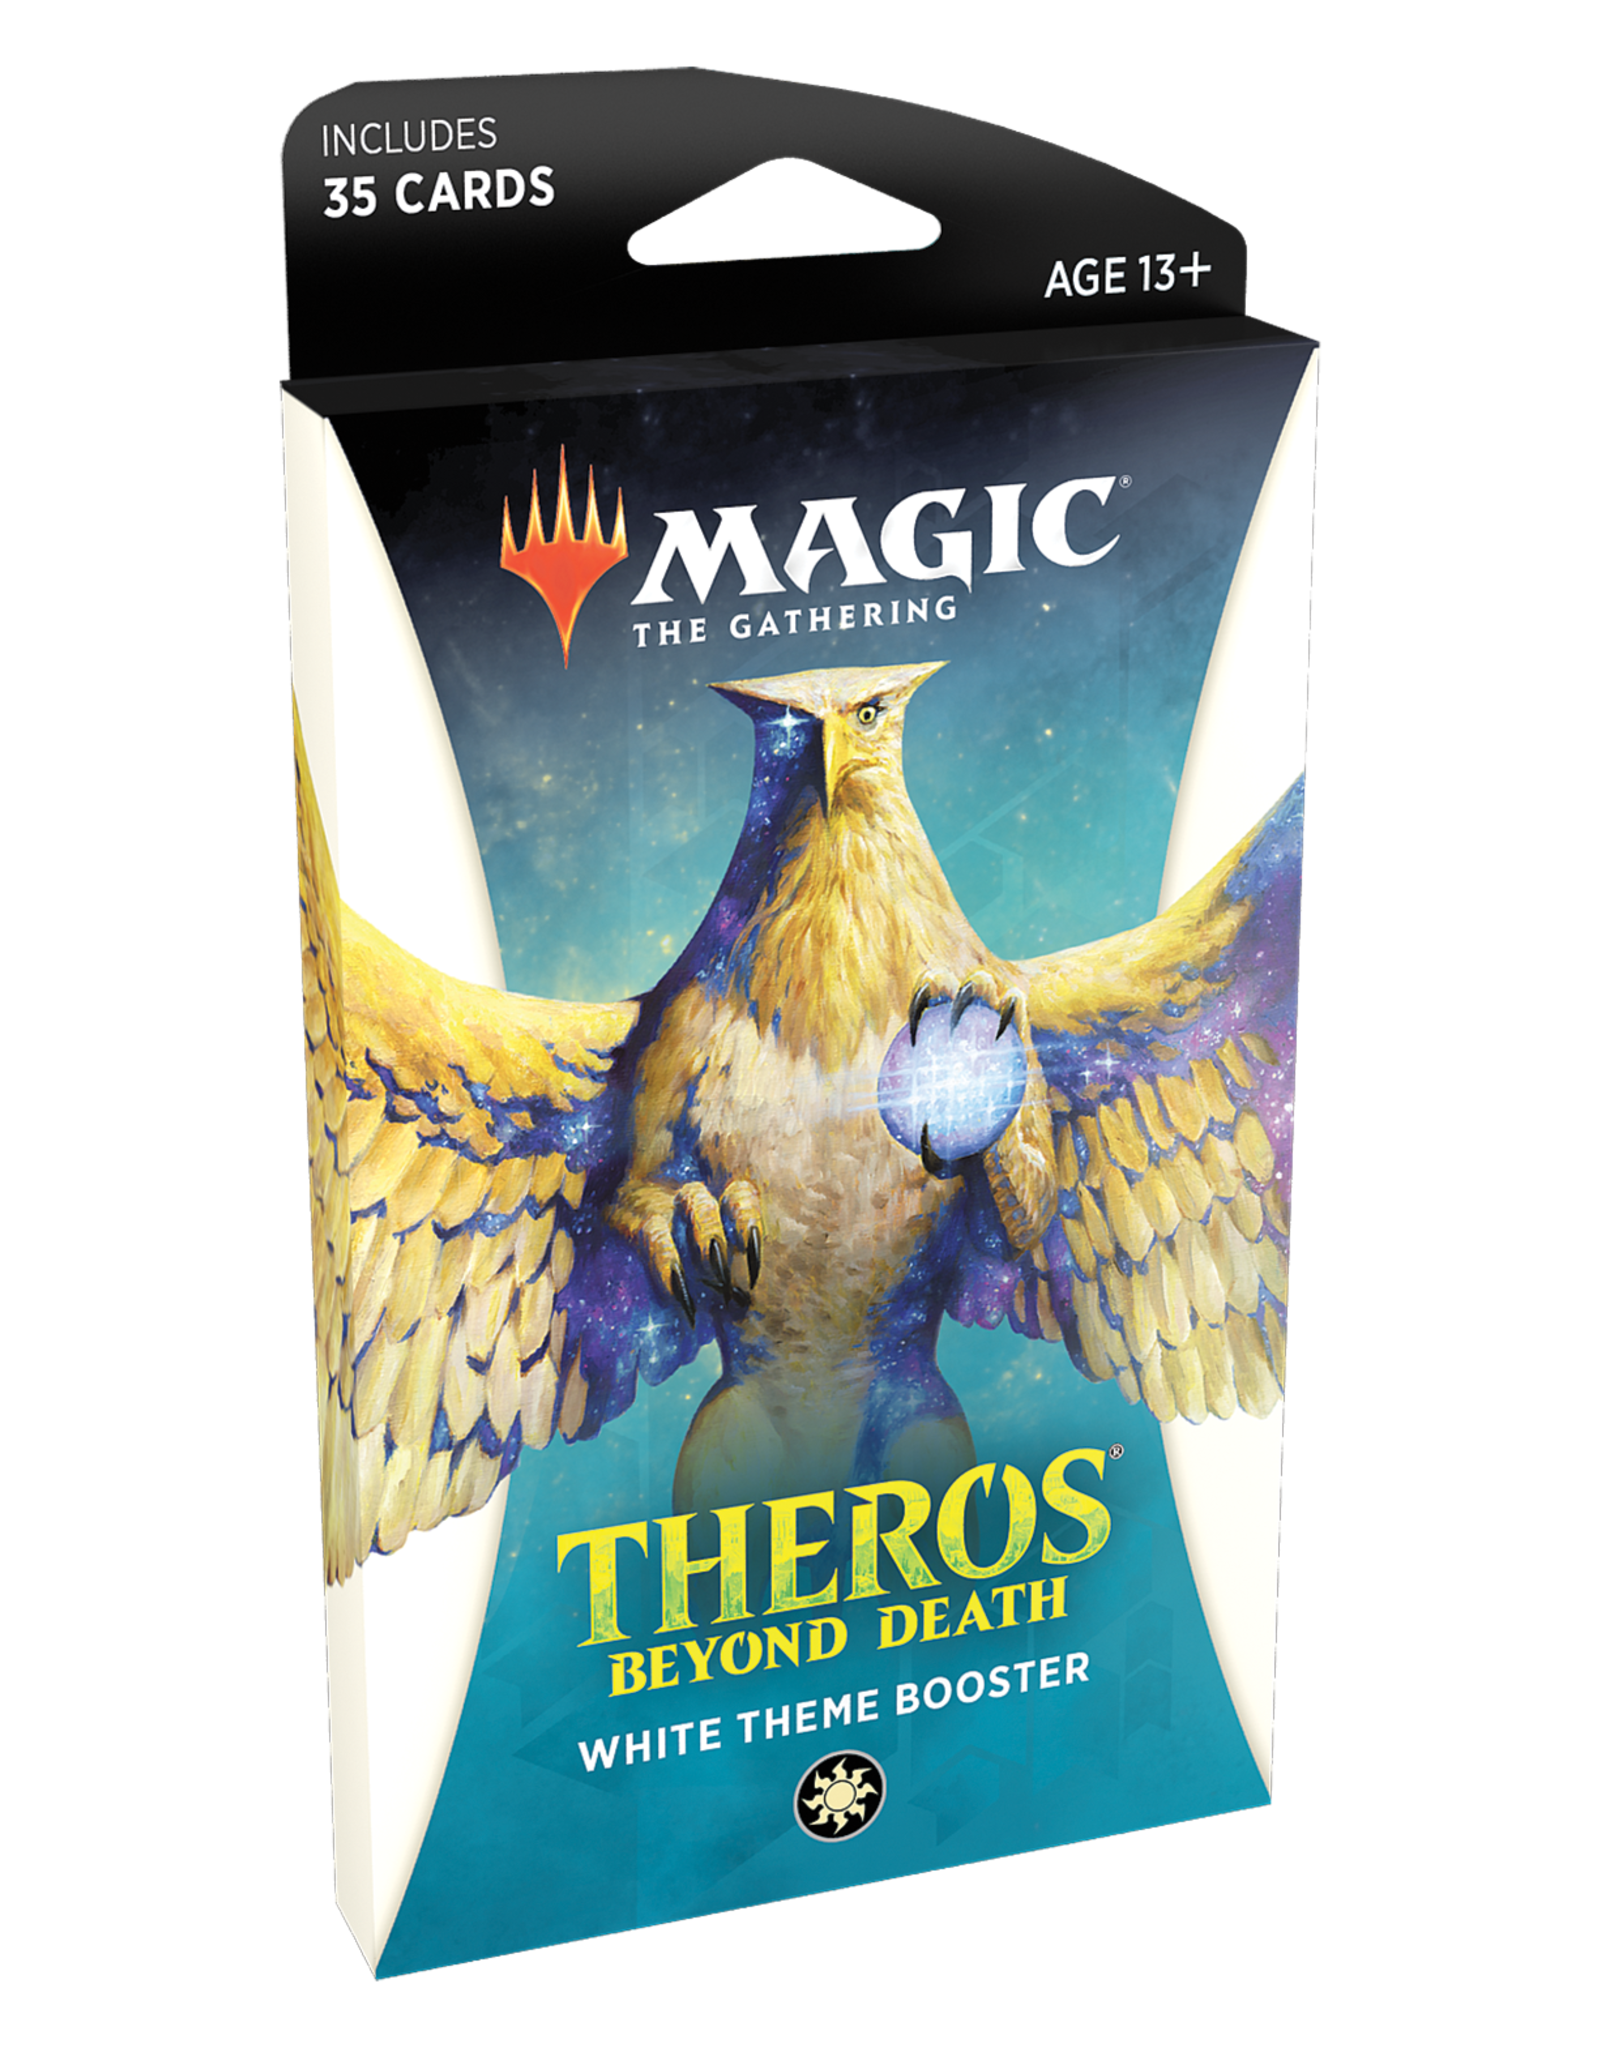 Magic: The Gathering Magic: The Gathering - Theros Beyond Death Theme Booster Pack